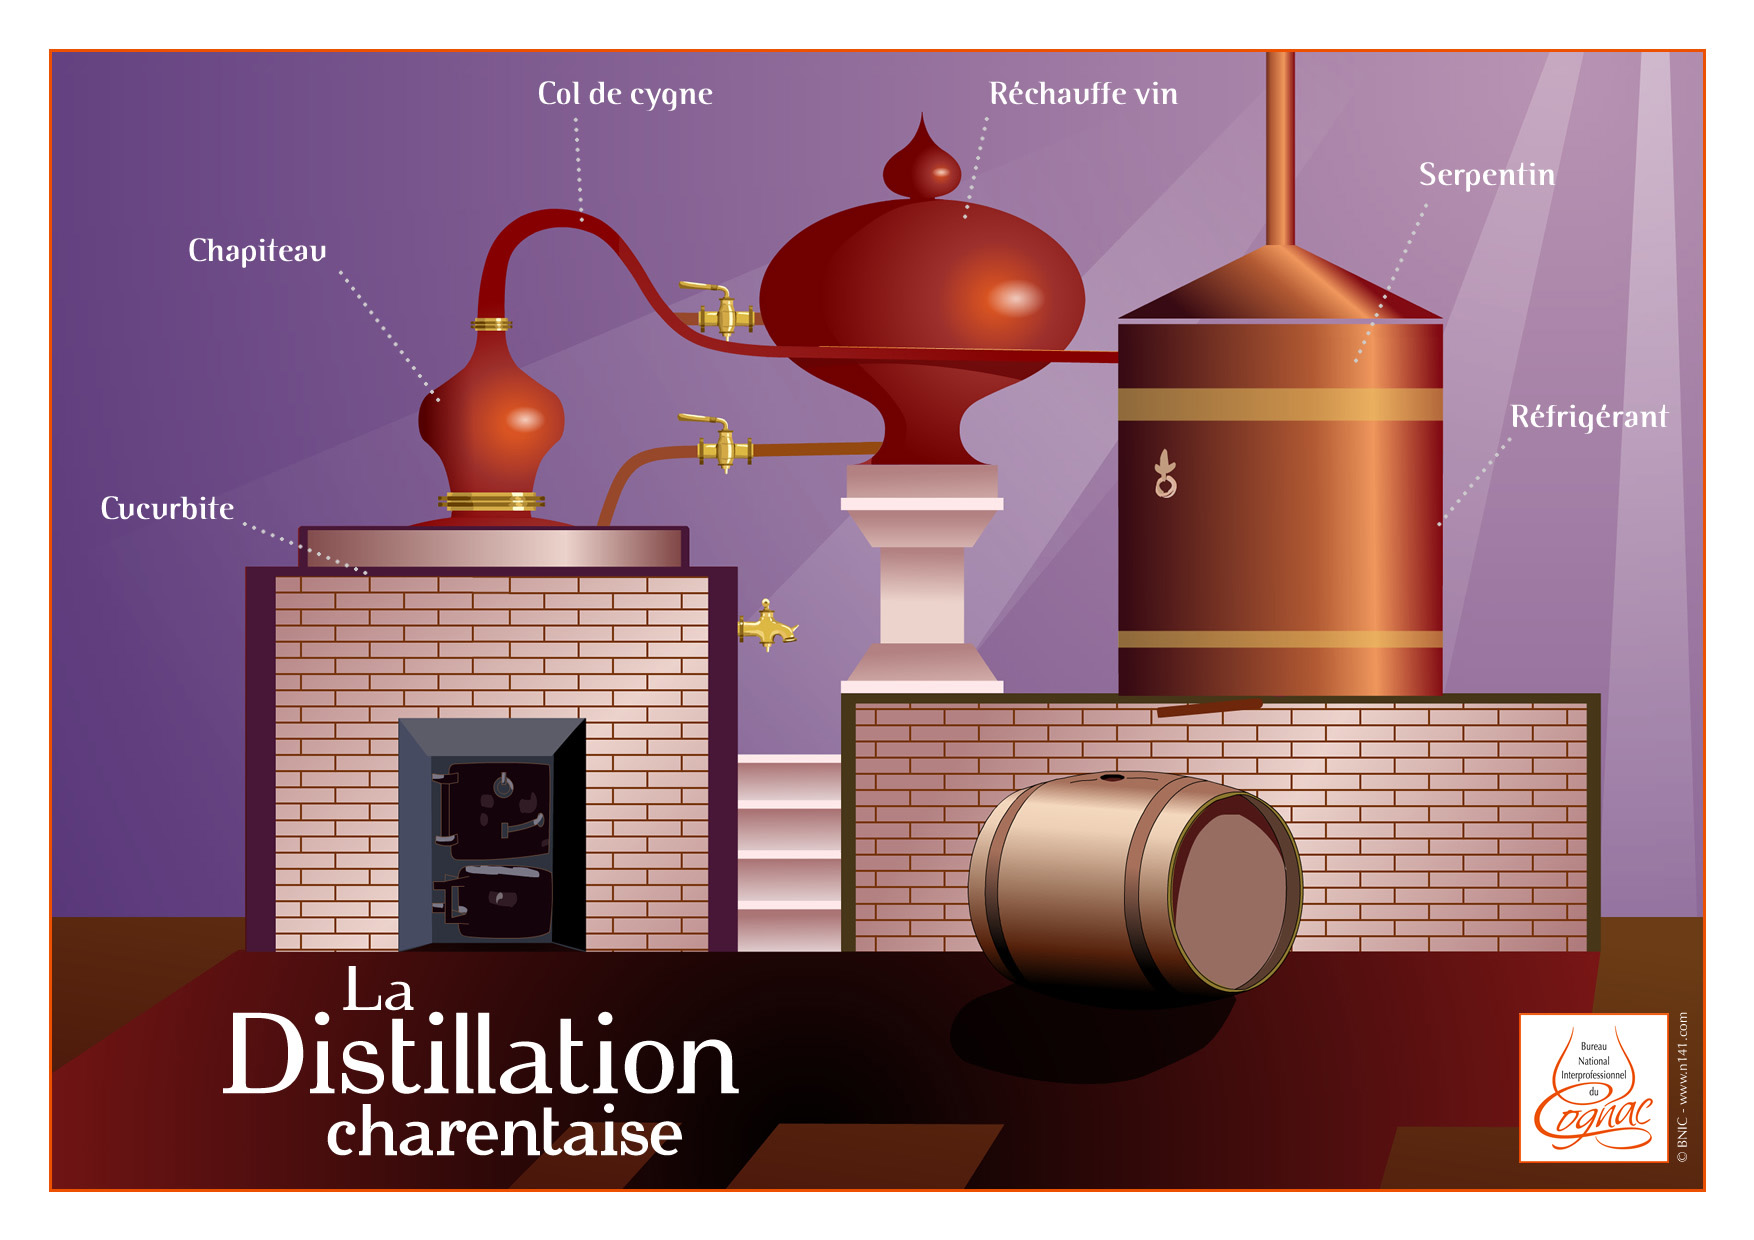 La double distillation charentaise